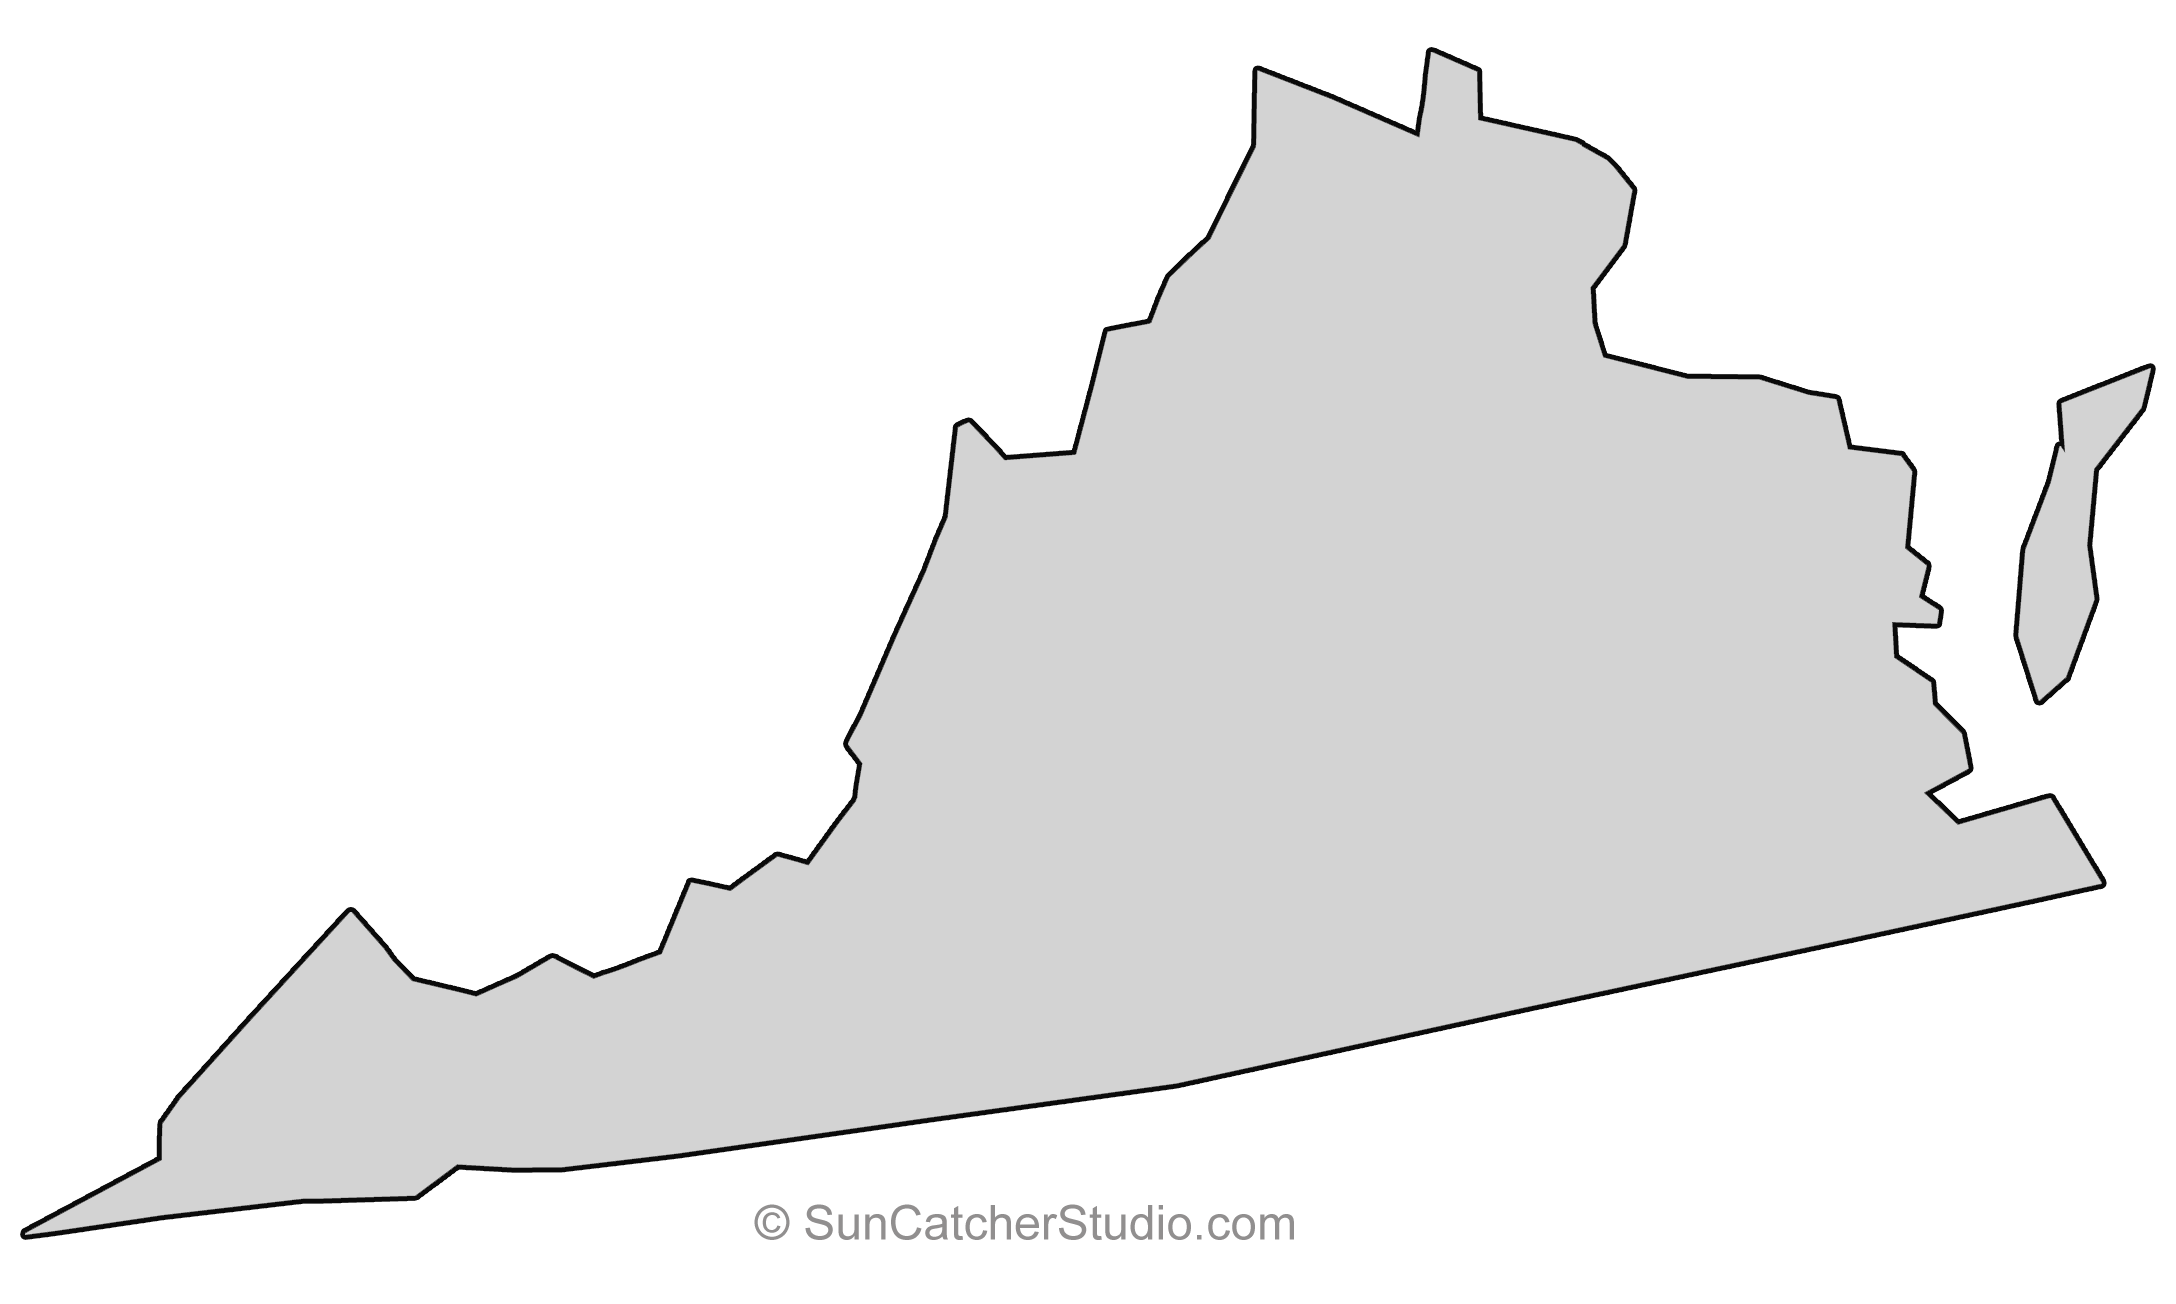 Virginia state outline png. Quilt patterns stencils combine